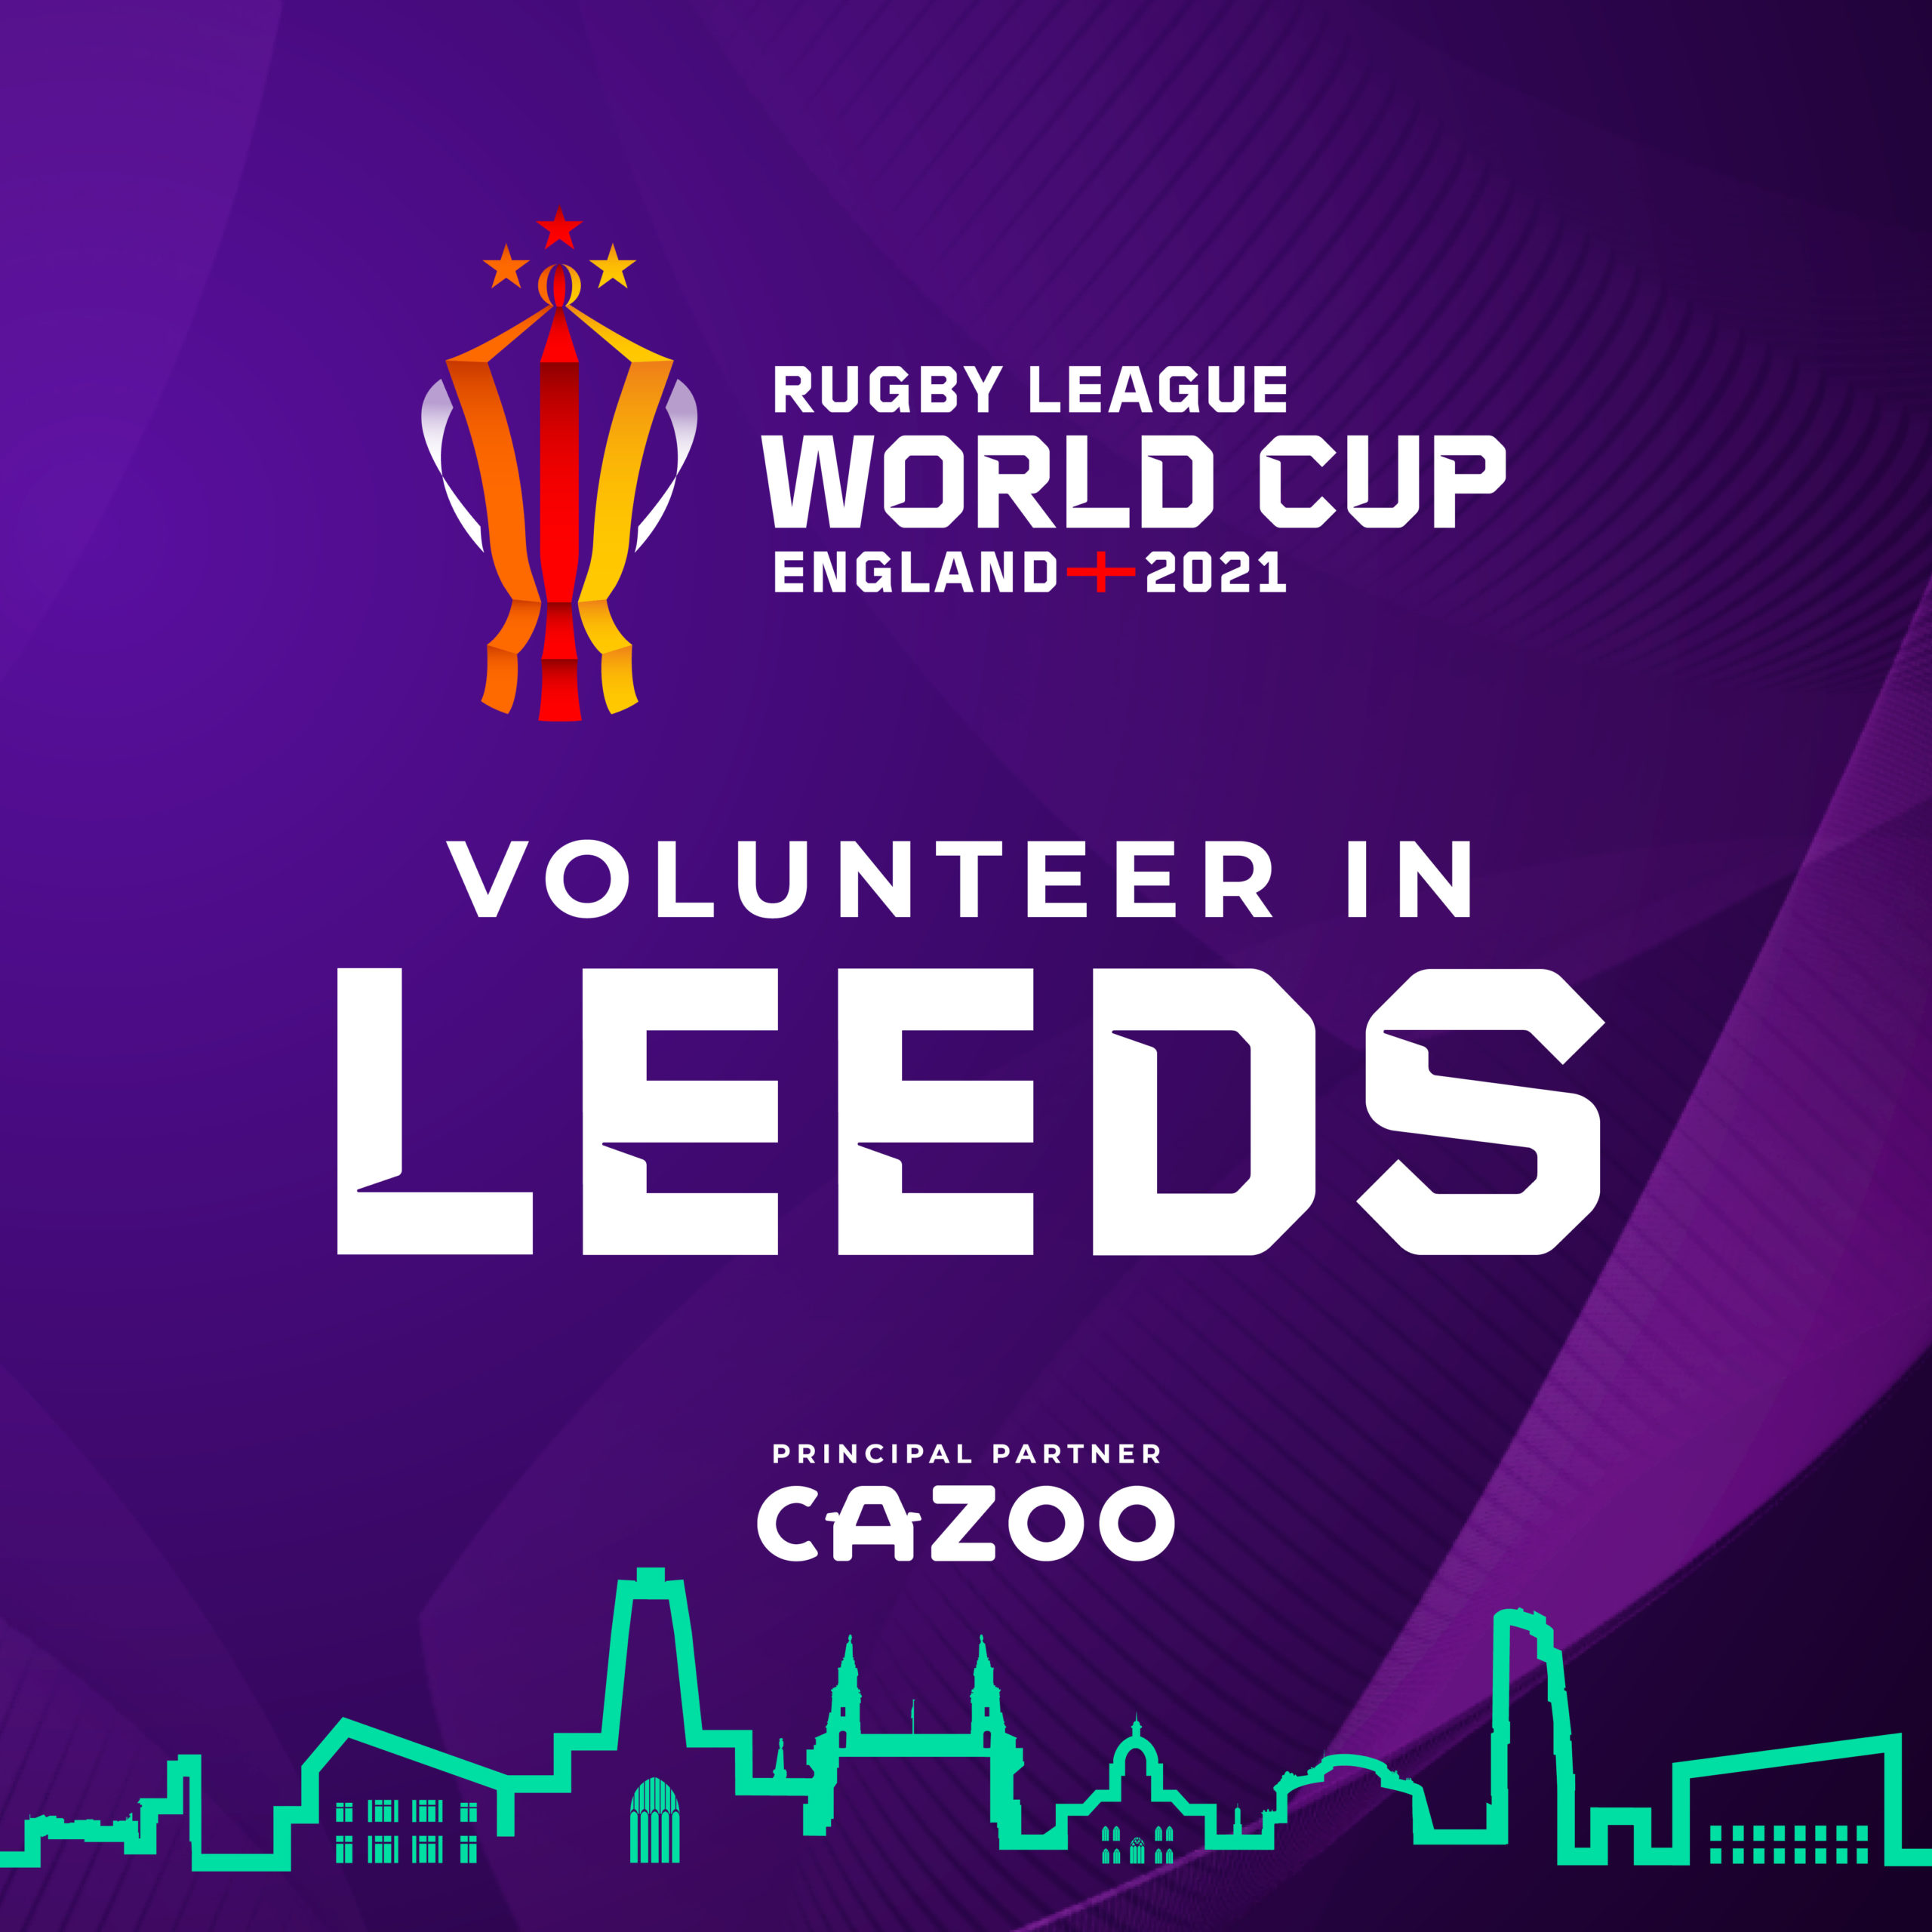 Volunteer for Rugby League World Cup 2021